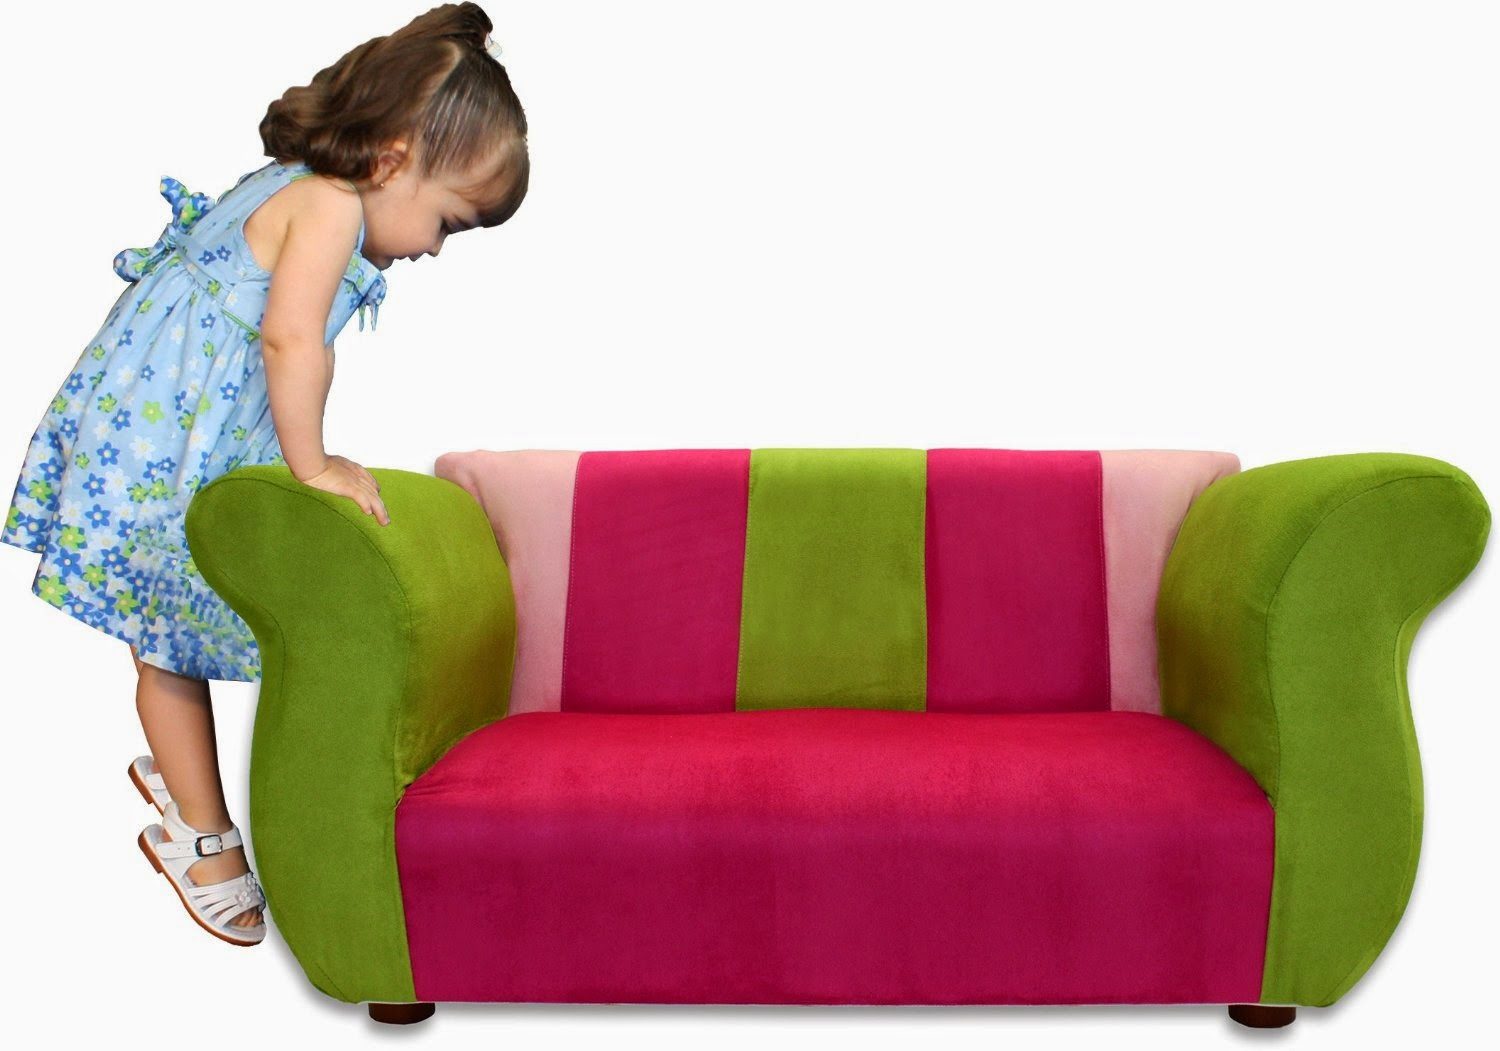 Kids Couch Mini Couch For Kids